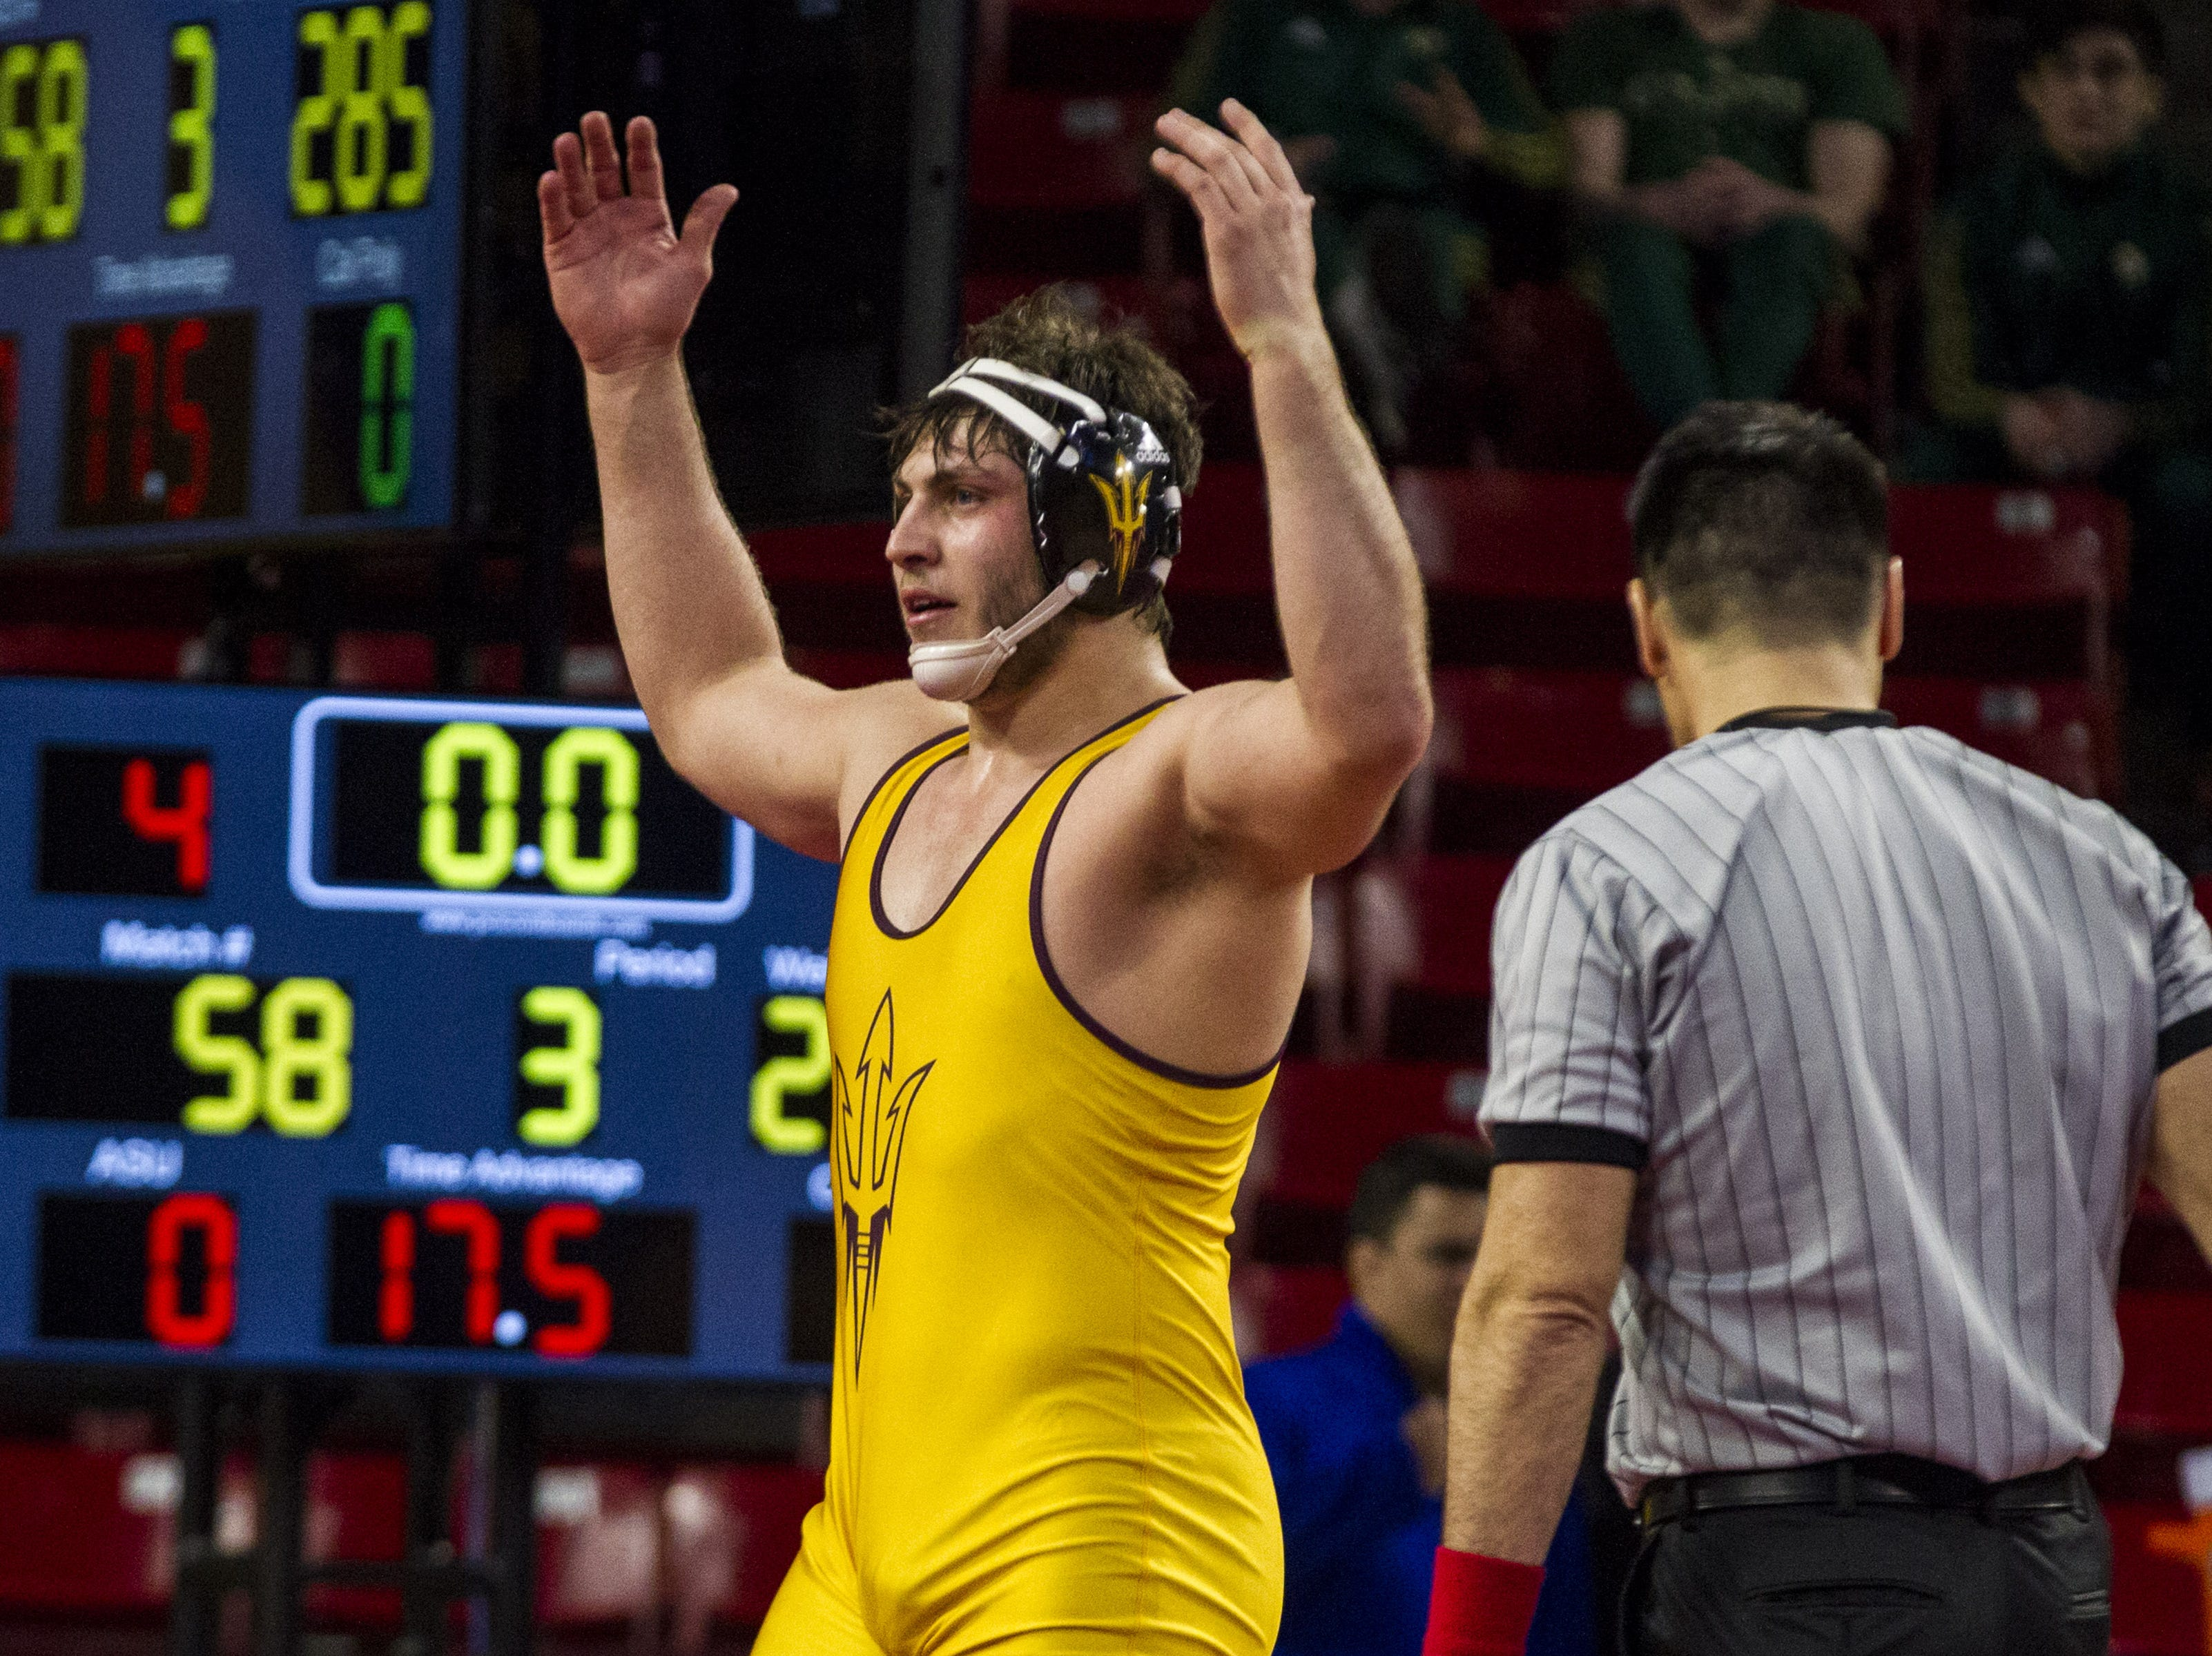 ASU heavyweight Brady Daniel celebrates his third place win over Cal Poly's Sam Aguilar during the Pac 12 Wrestling Championship at Wells Fargo Arena in Tempe on March 9, 2019.